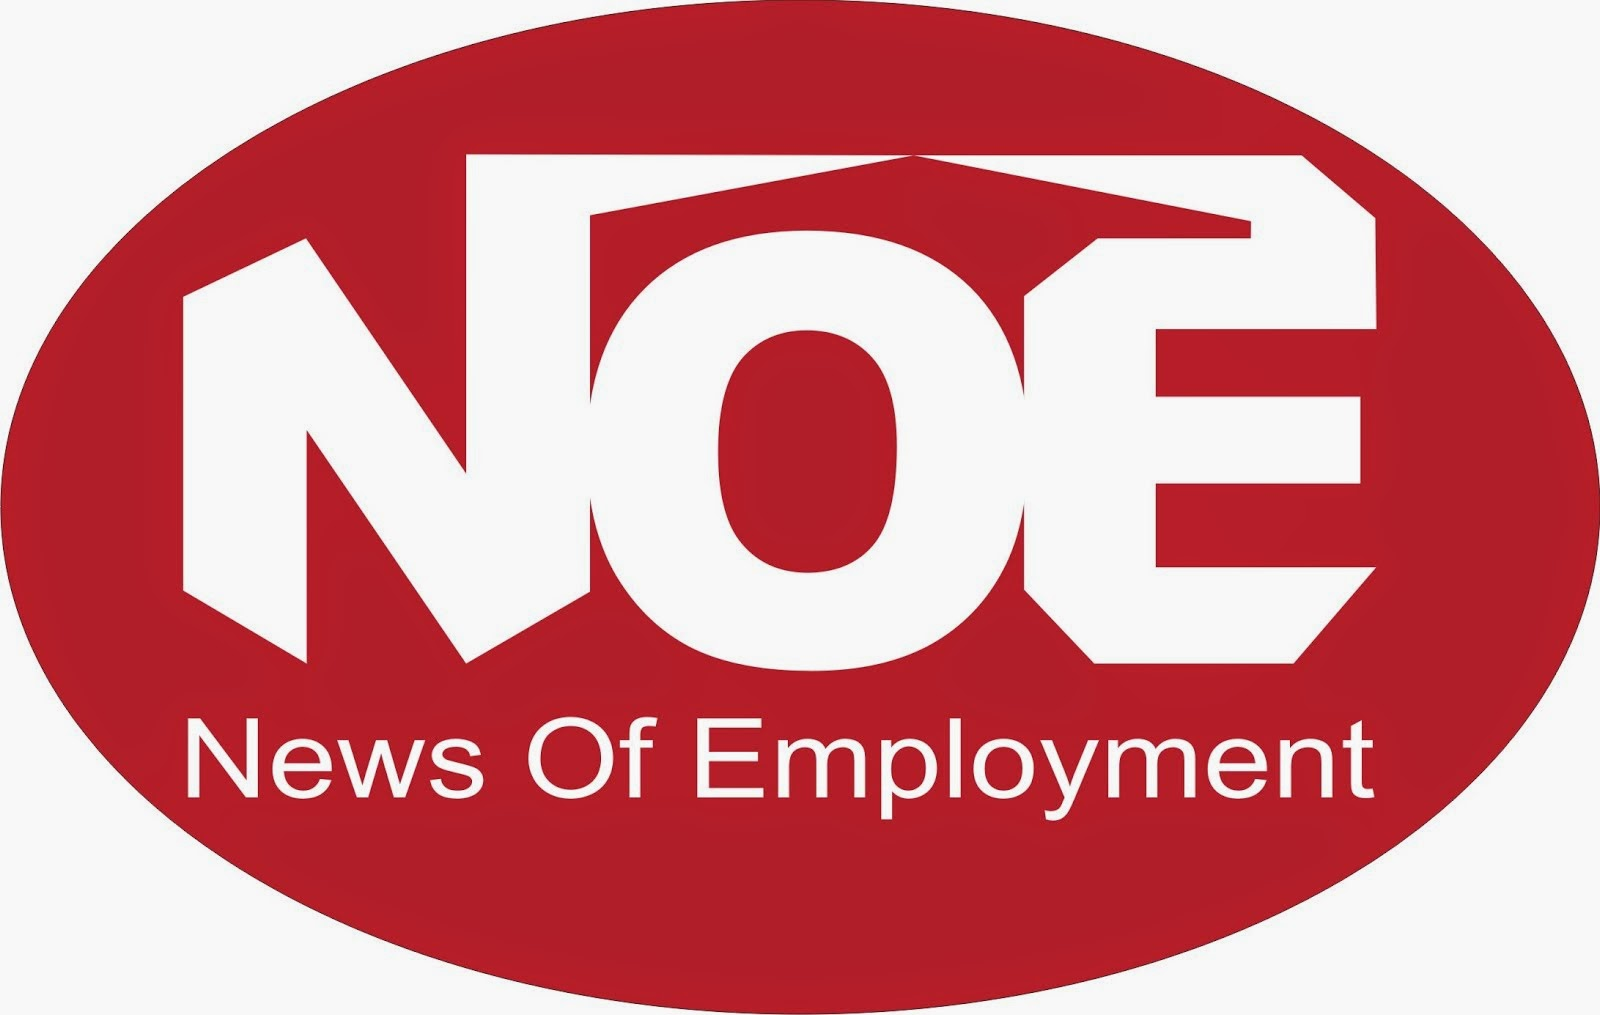 News of Employment